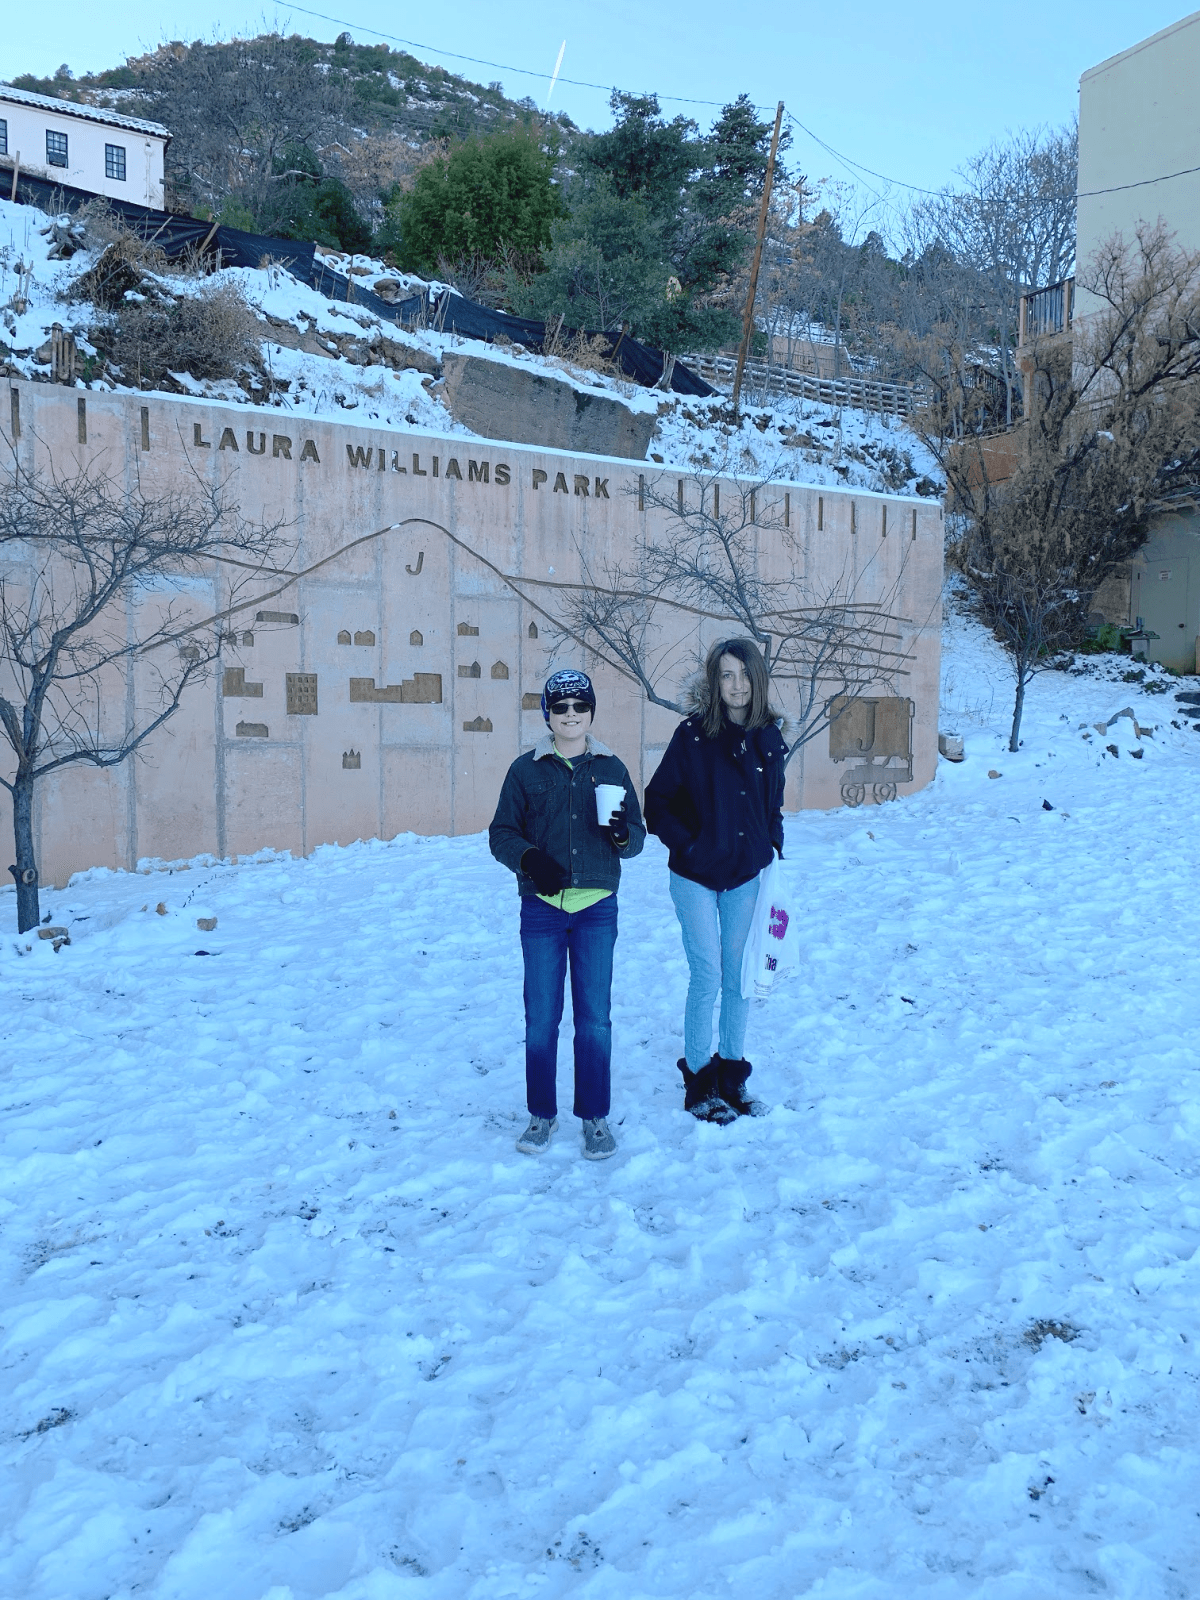 Laura Williams Park in Jerome, AZ with tween and teen